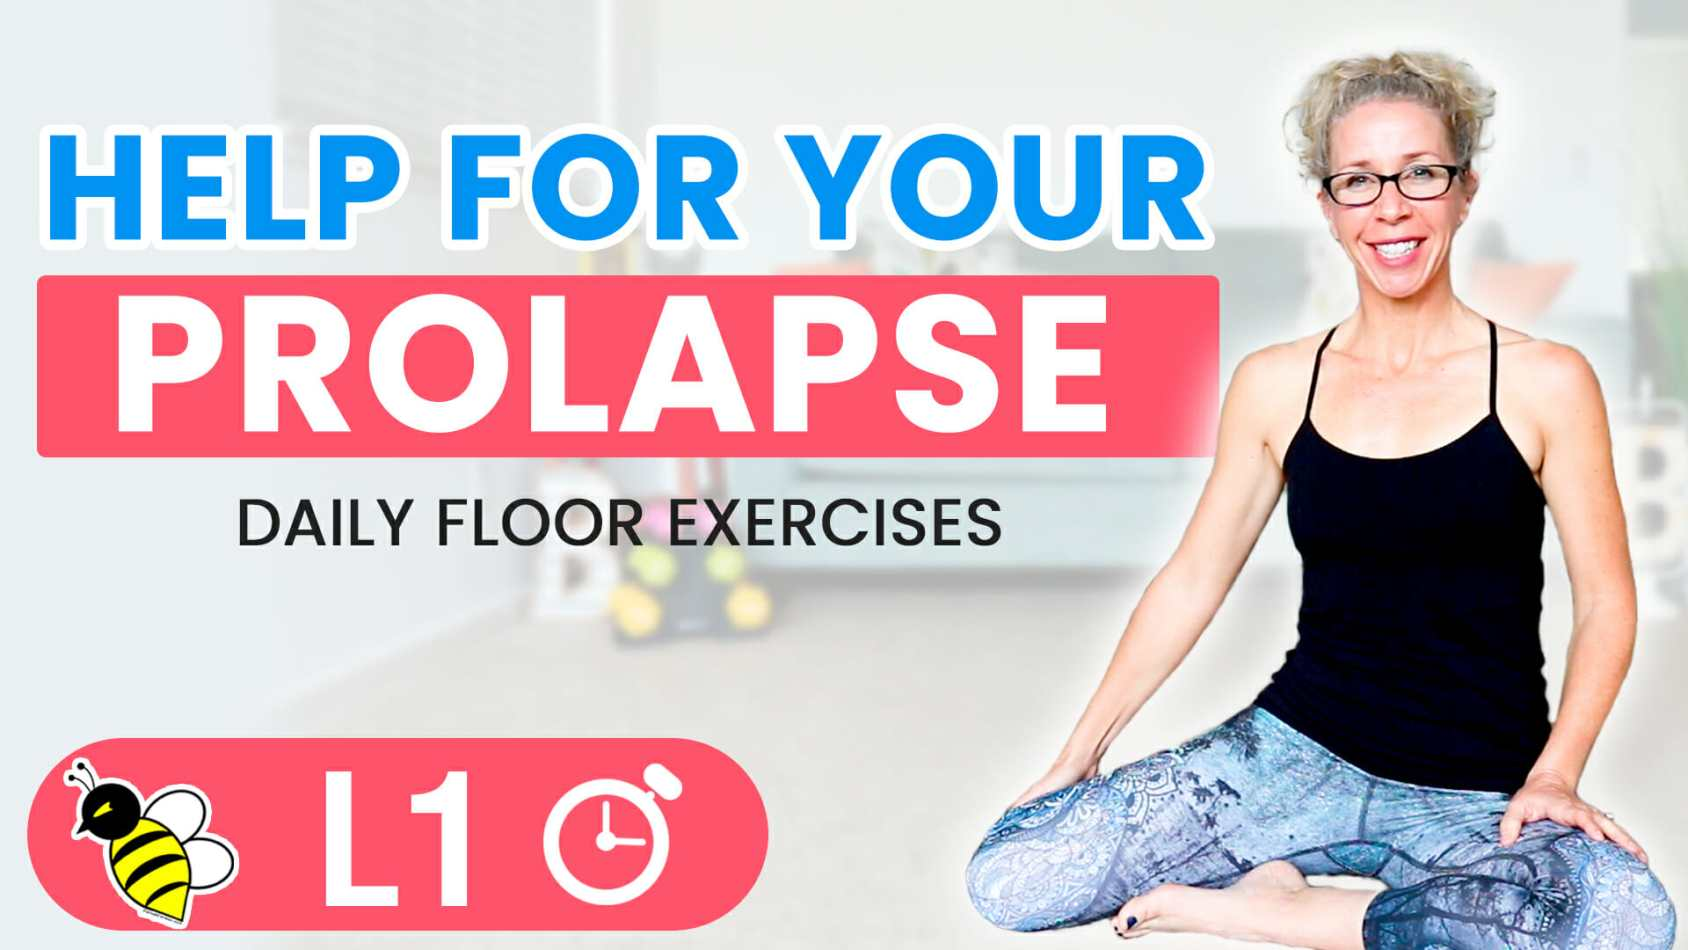 HELP for your PROLAPSE 5-Minute Friday FIX workout